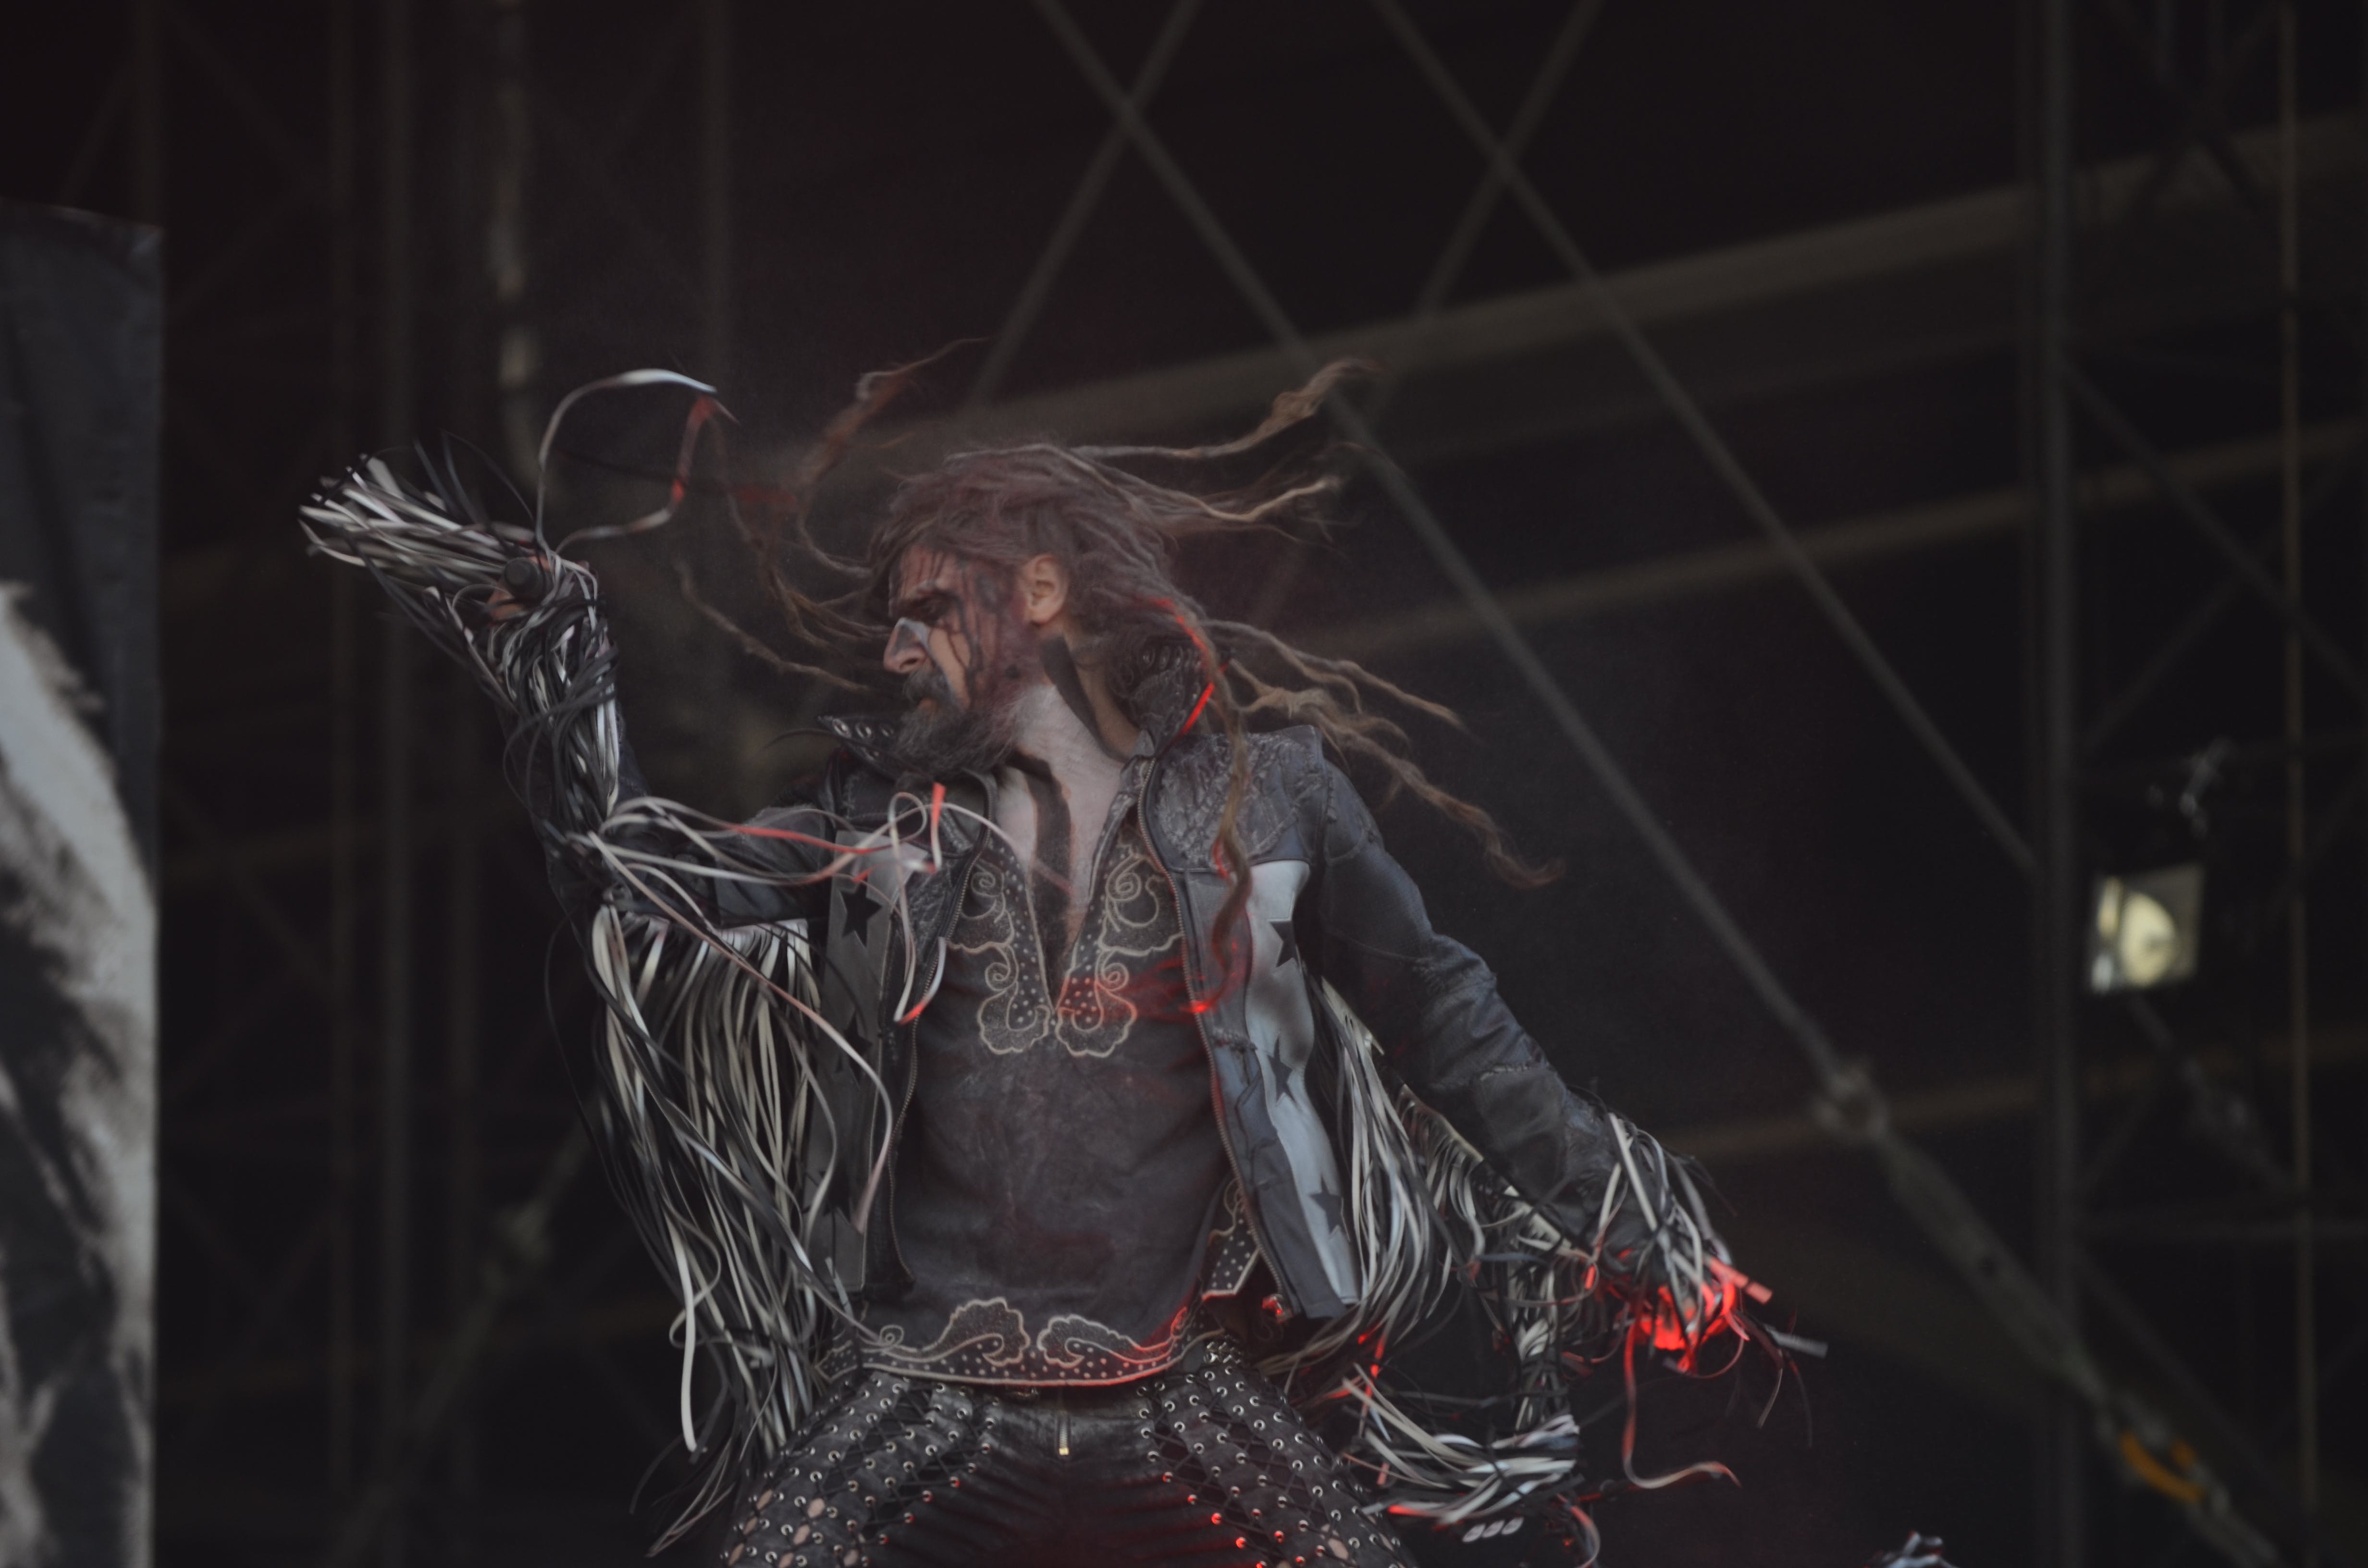 Free stock photo of Rob Zombie - Graspop 2014